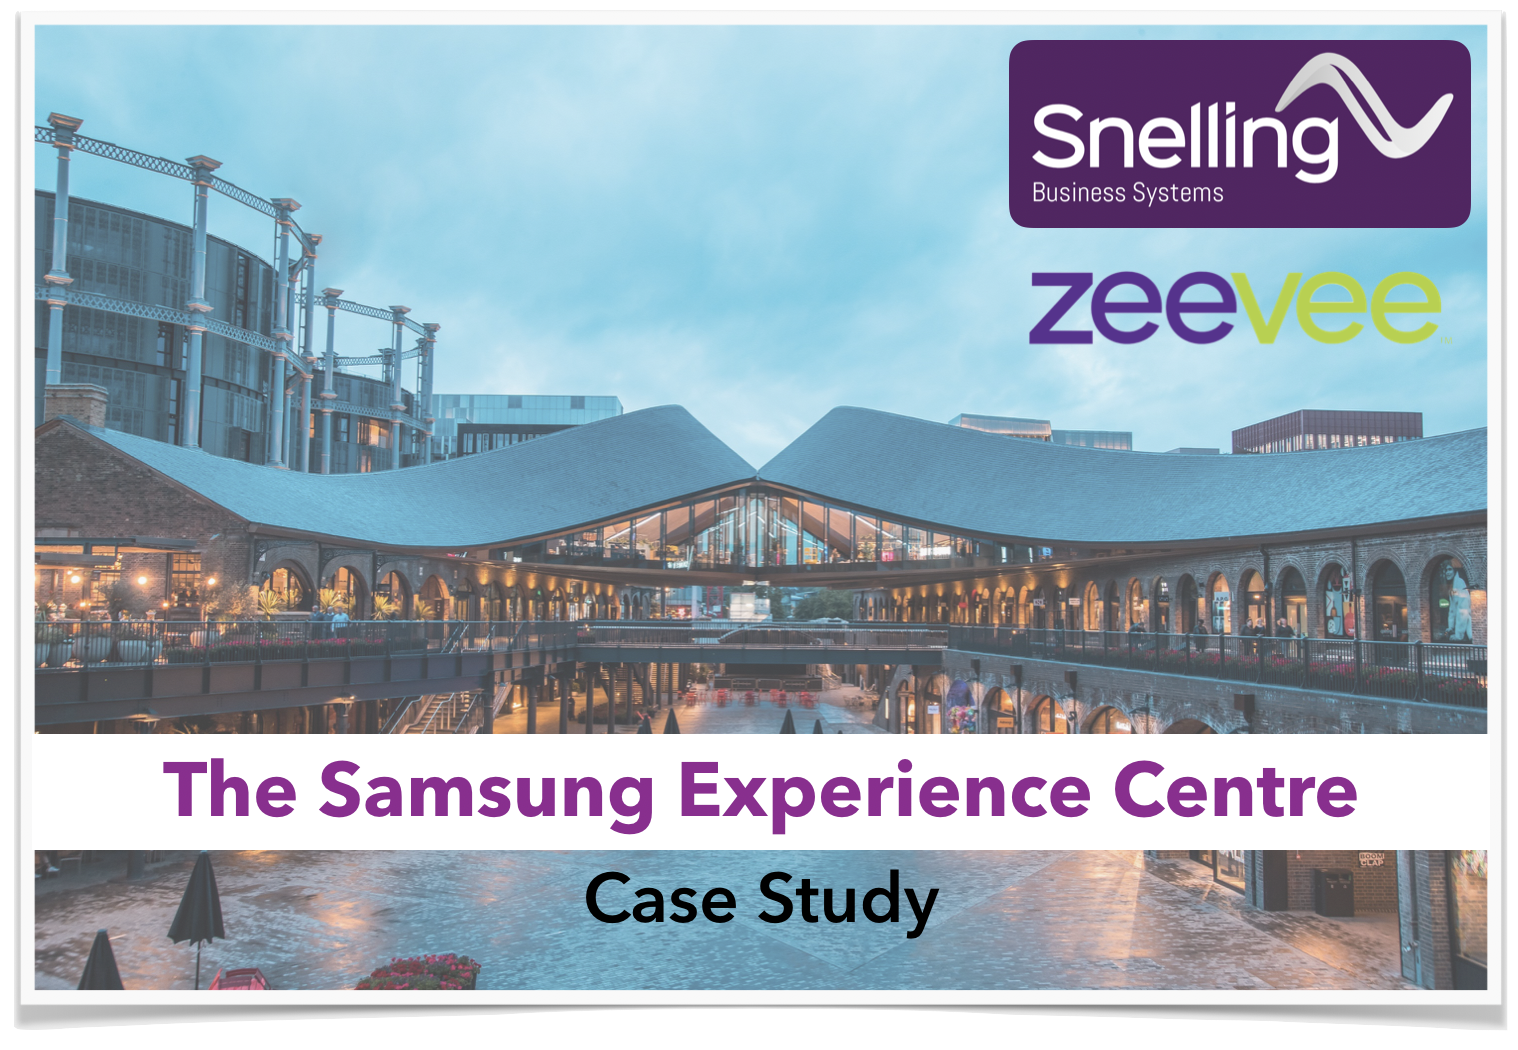 Why Uncompressed and HDR Matter at The Samsung Experience Centre